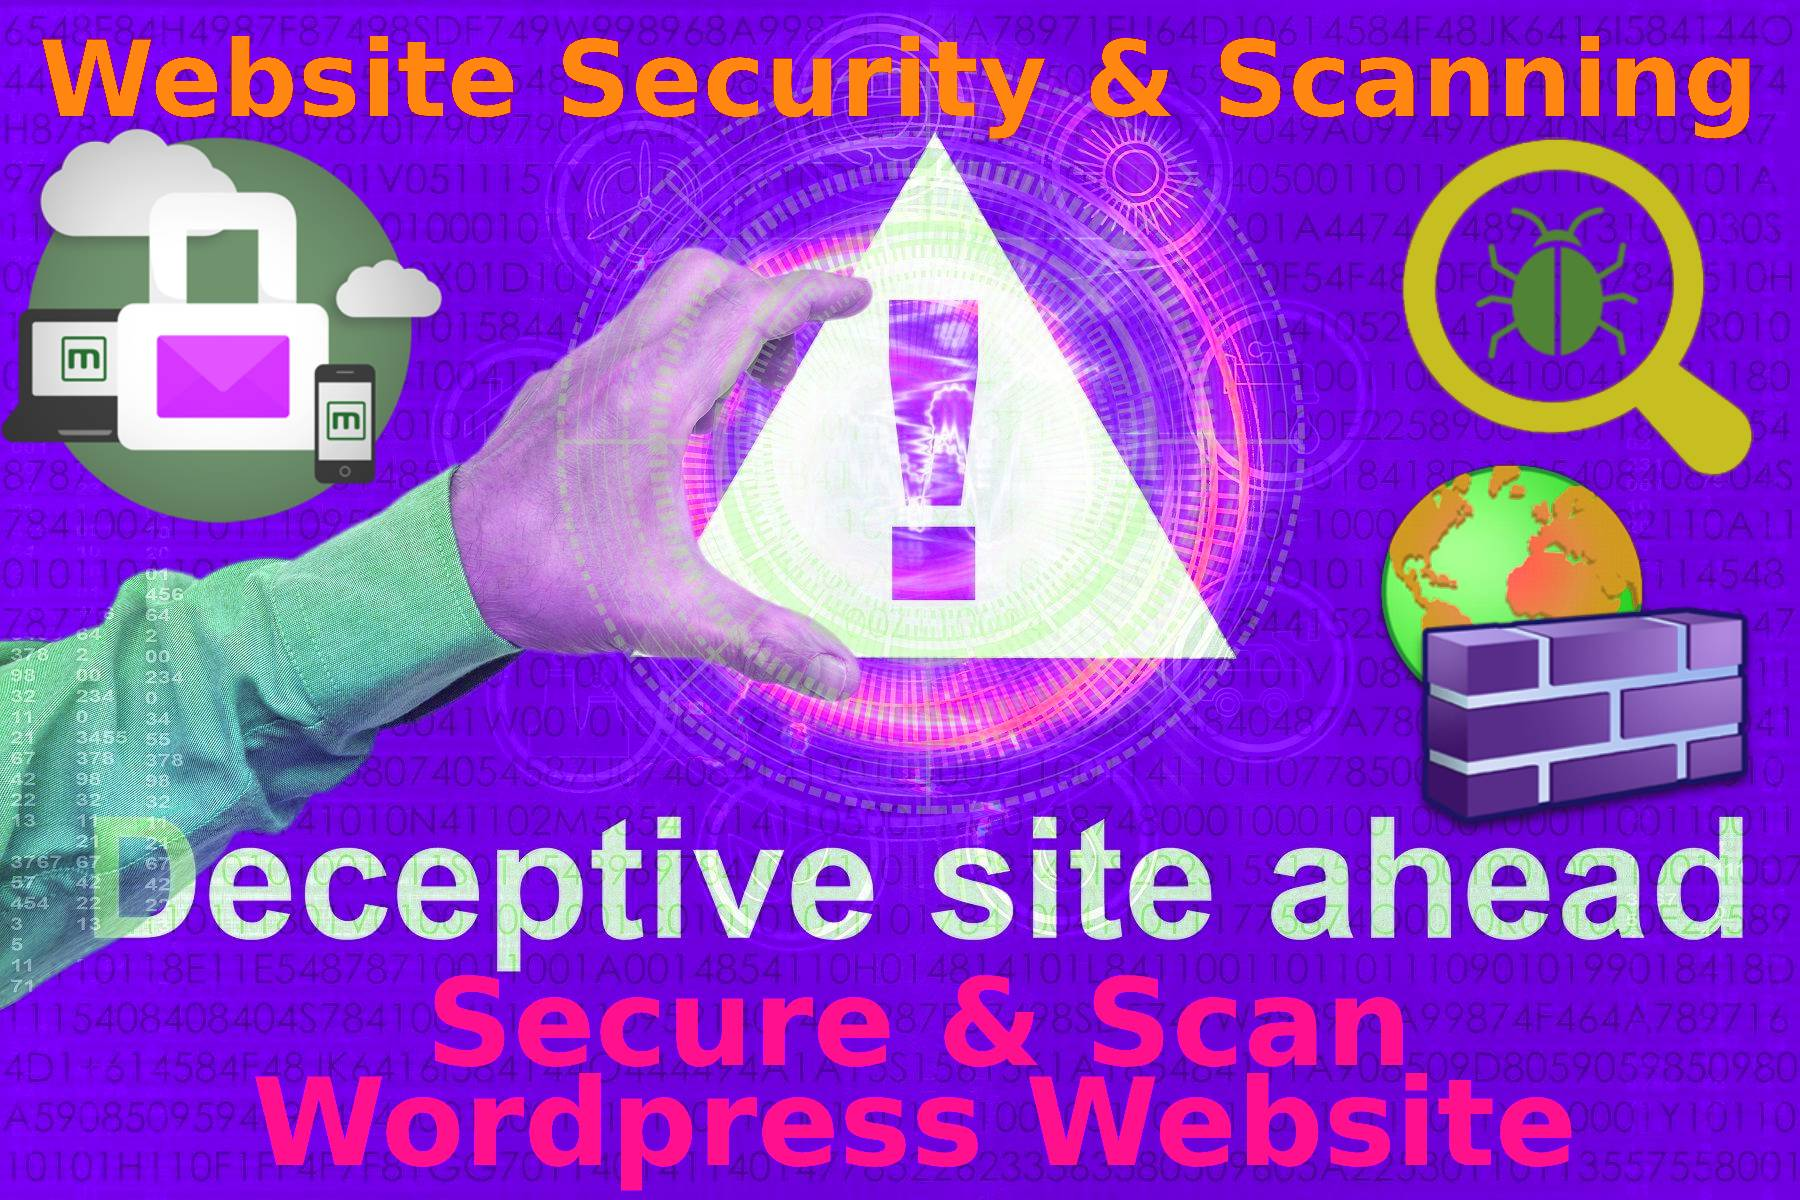 How to remove Deceptive Site Ahead Warning?